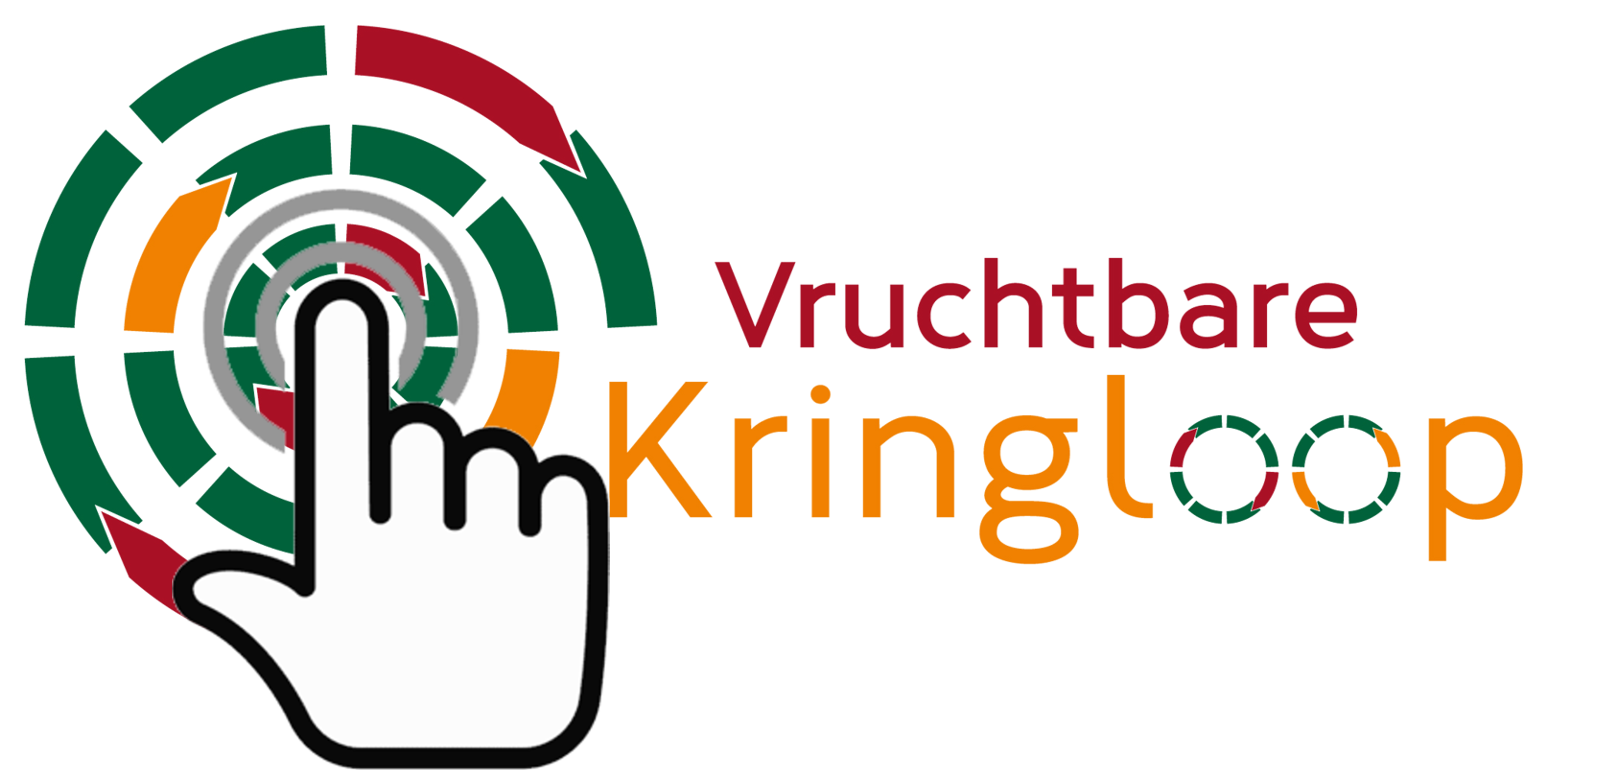 Lezing AOC Oost - Vruchtbare Kringloop